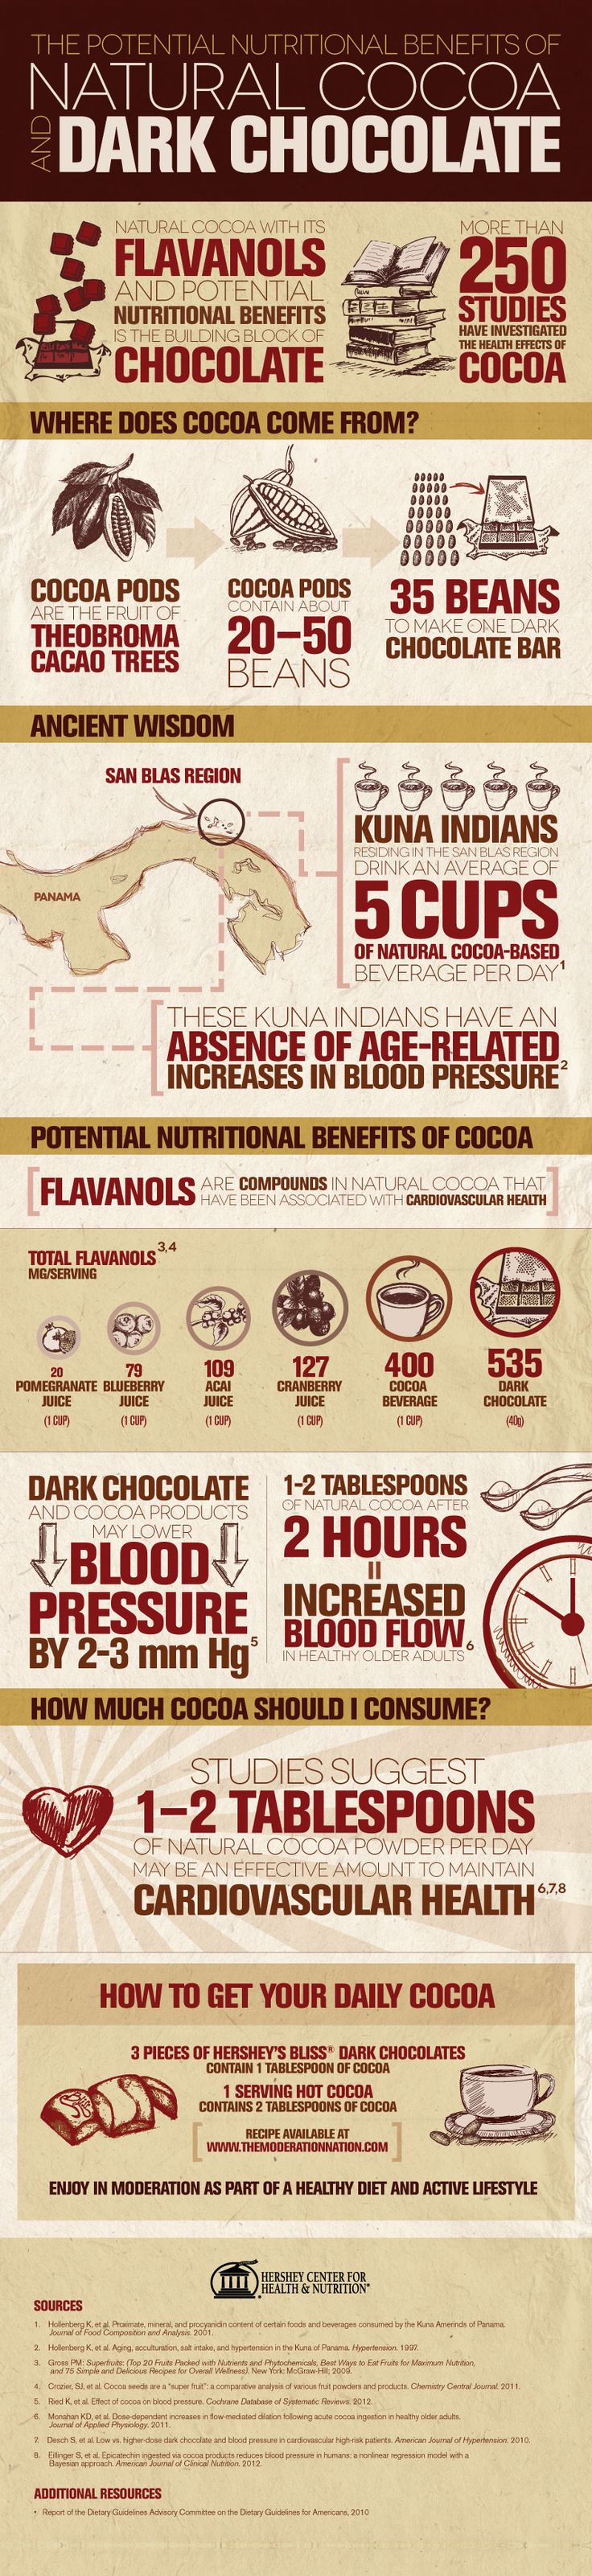 What are the health benefits of dark chocolate?